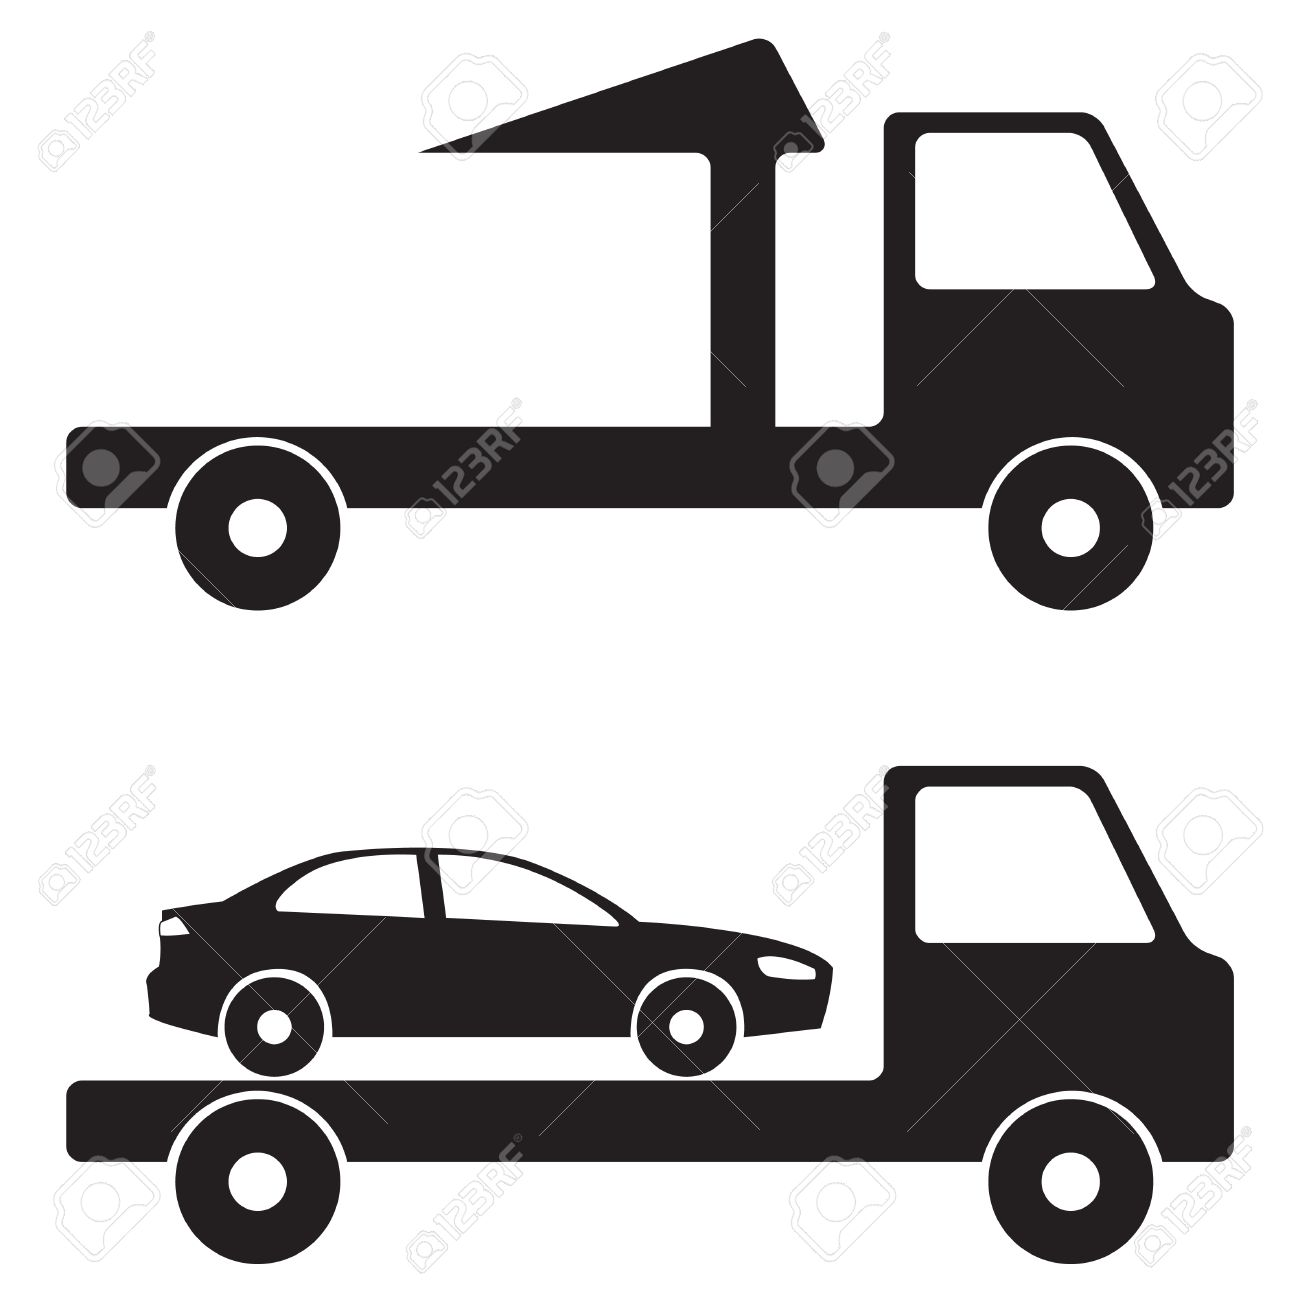 tow truck wrecker illustration icon or sign vector black on rh 123rf com tow truck vector clipart cartoon tow truck vector